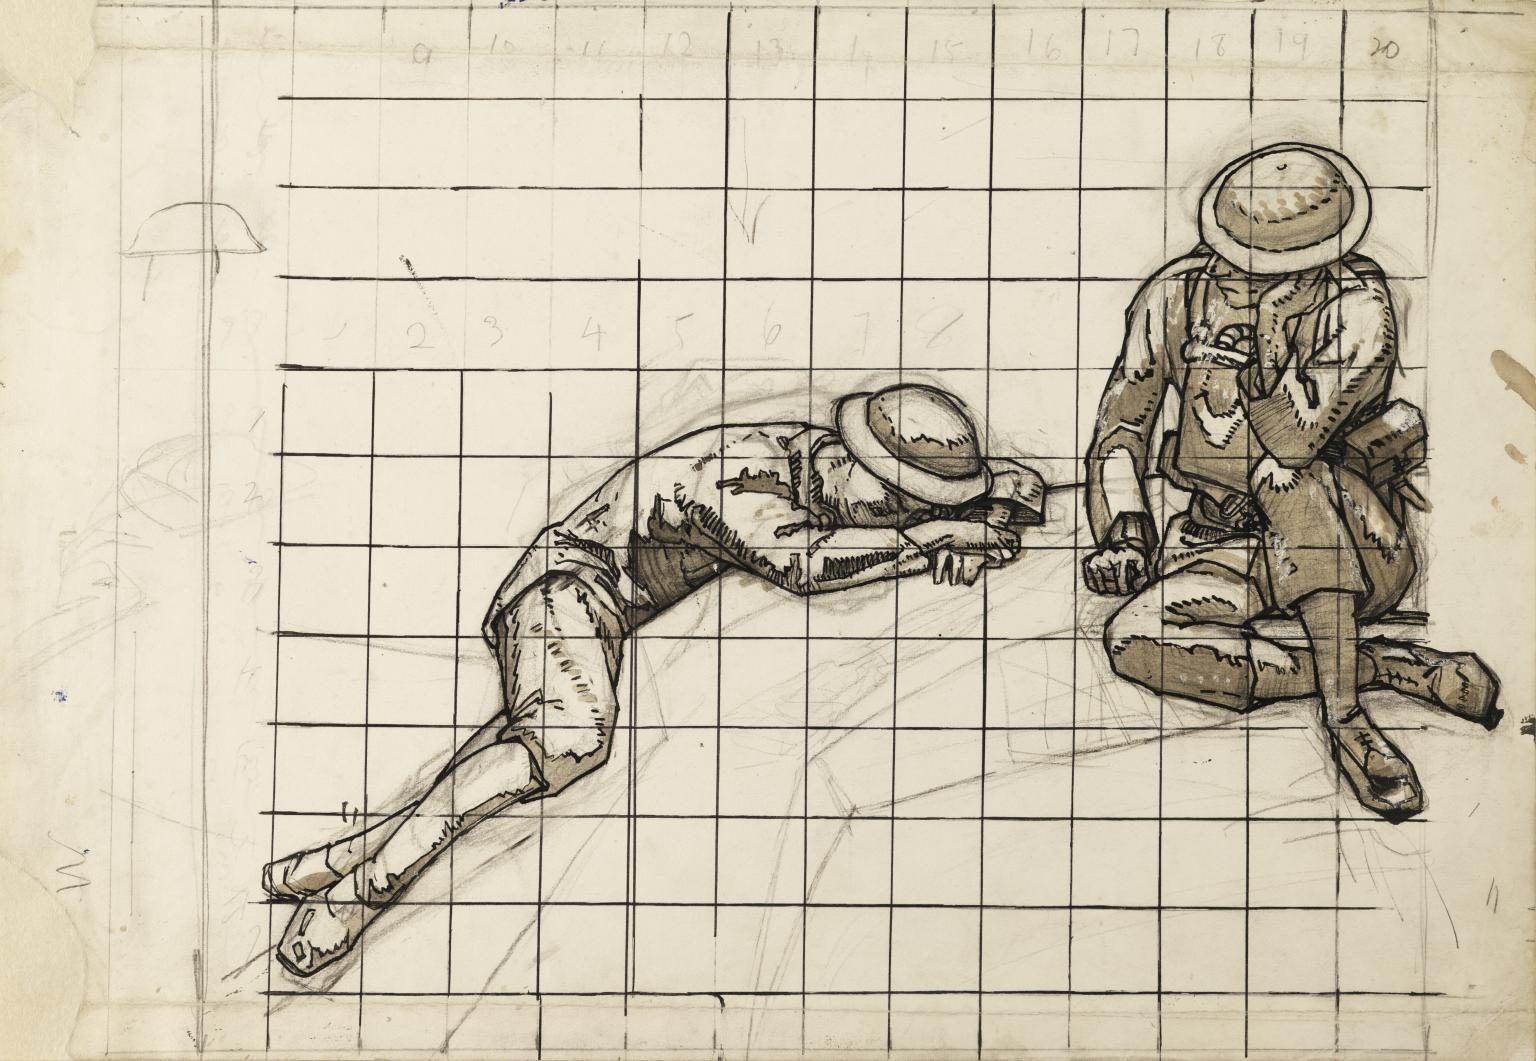 1536x1061 Squared Up Drawings Of Soldiers', David Jones, 1920 1 Tate